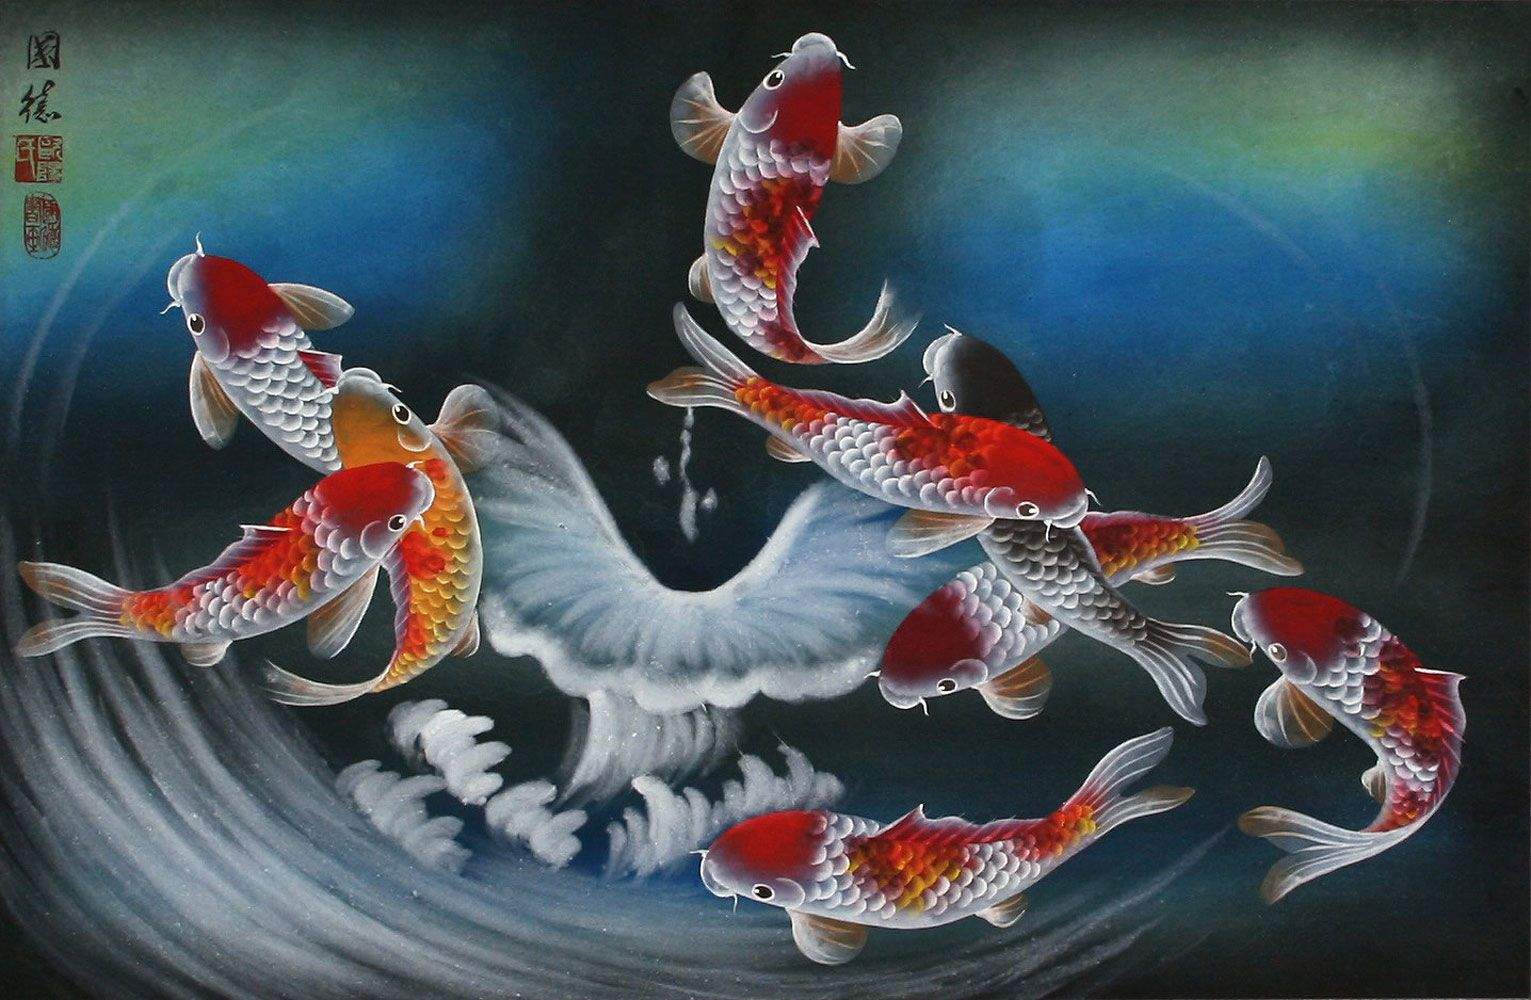 Japanese Koi Fish Art Wallpapers Top Free Japanese Koi Fish Art Backgrounds Wallpaperaccess